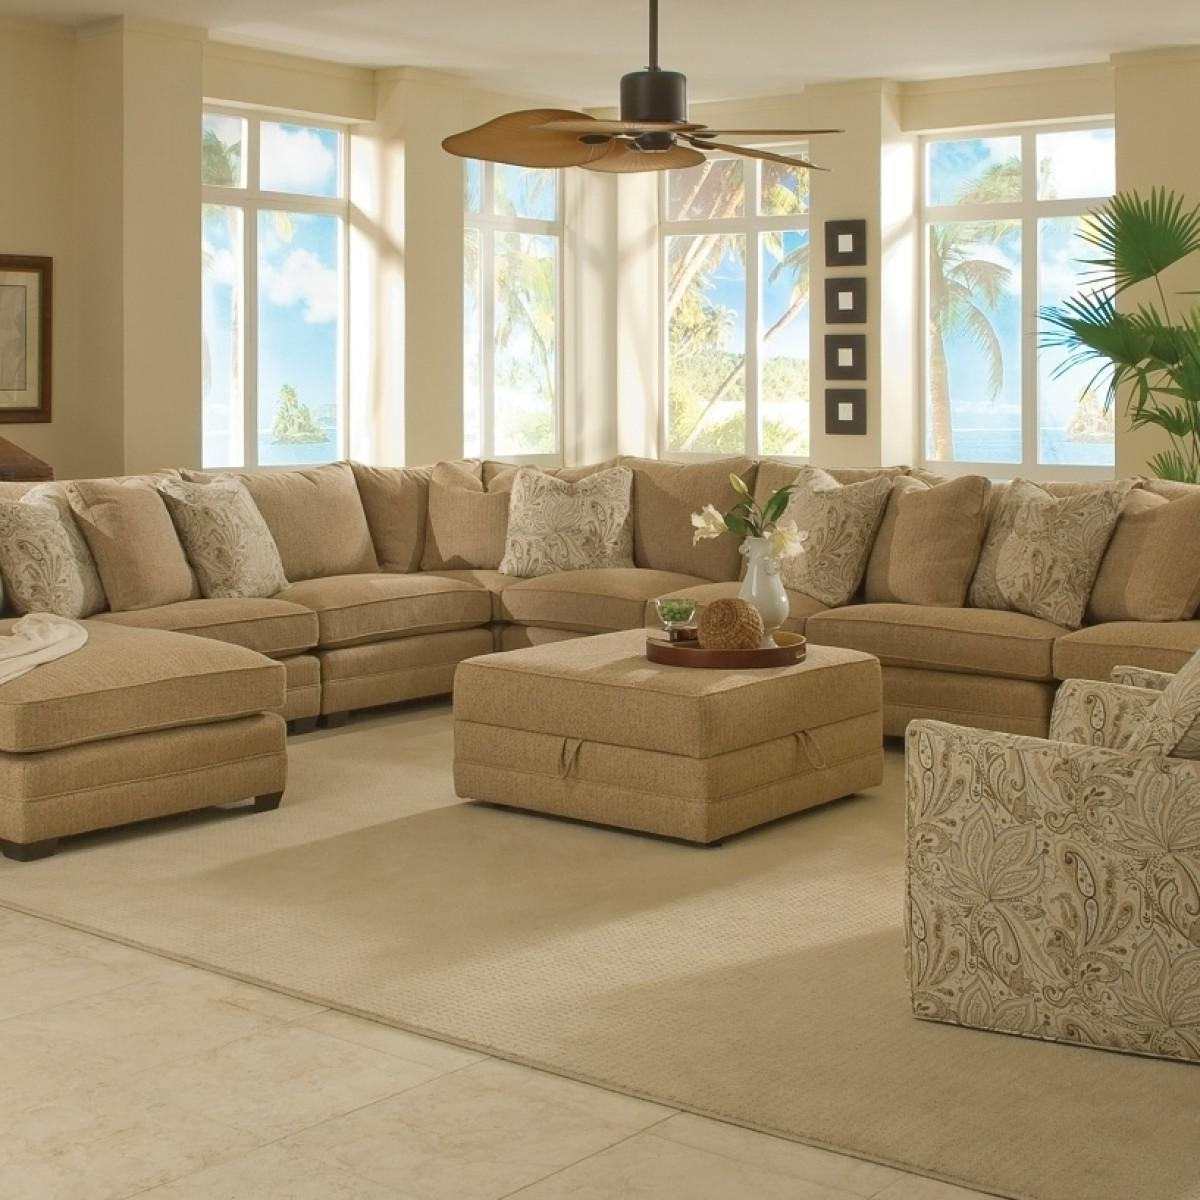 Trendy Furniture: Enchanting Large Room In Tan Color And Sectional Sofa In Deep Seating Sectional Sofas (View 12 of 20)